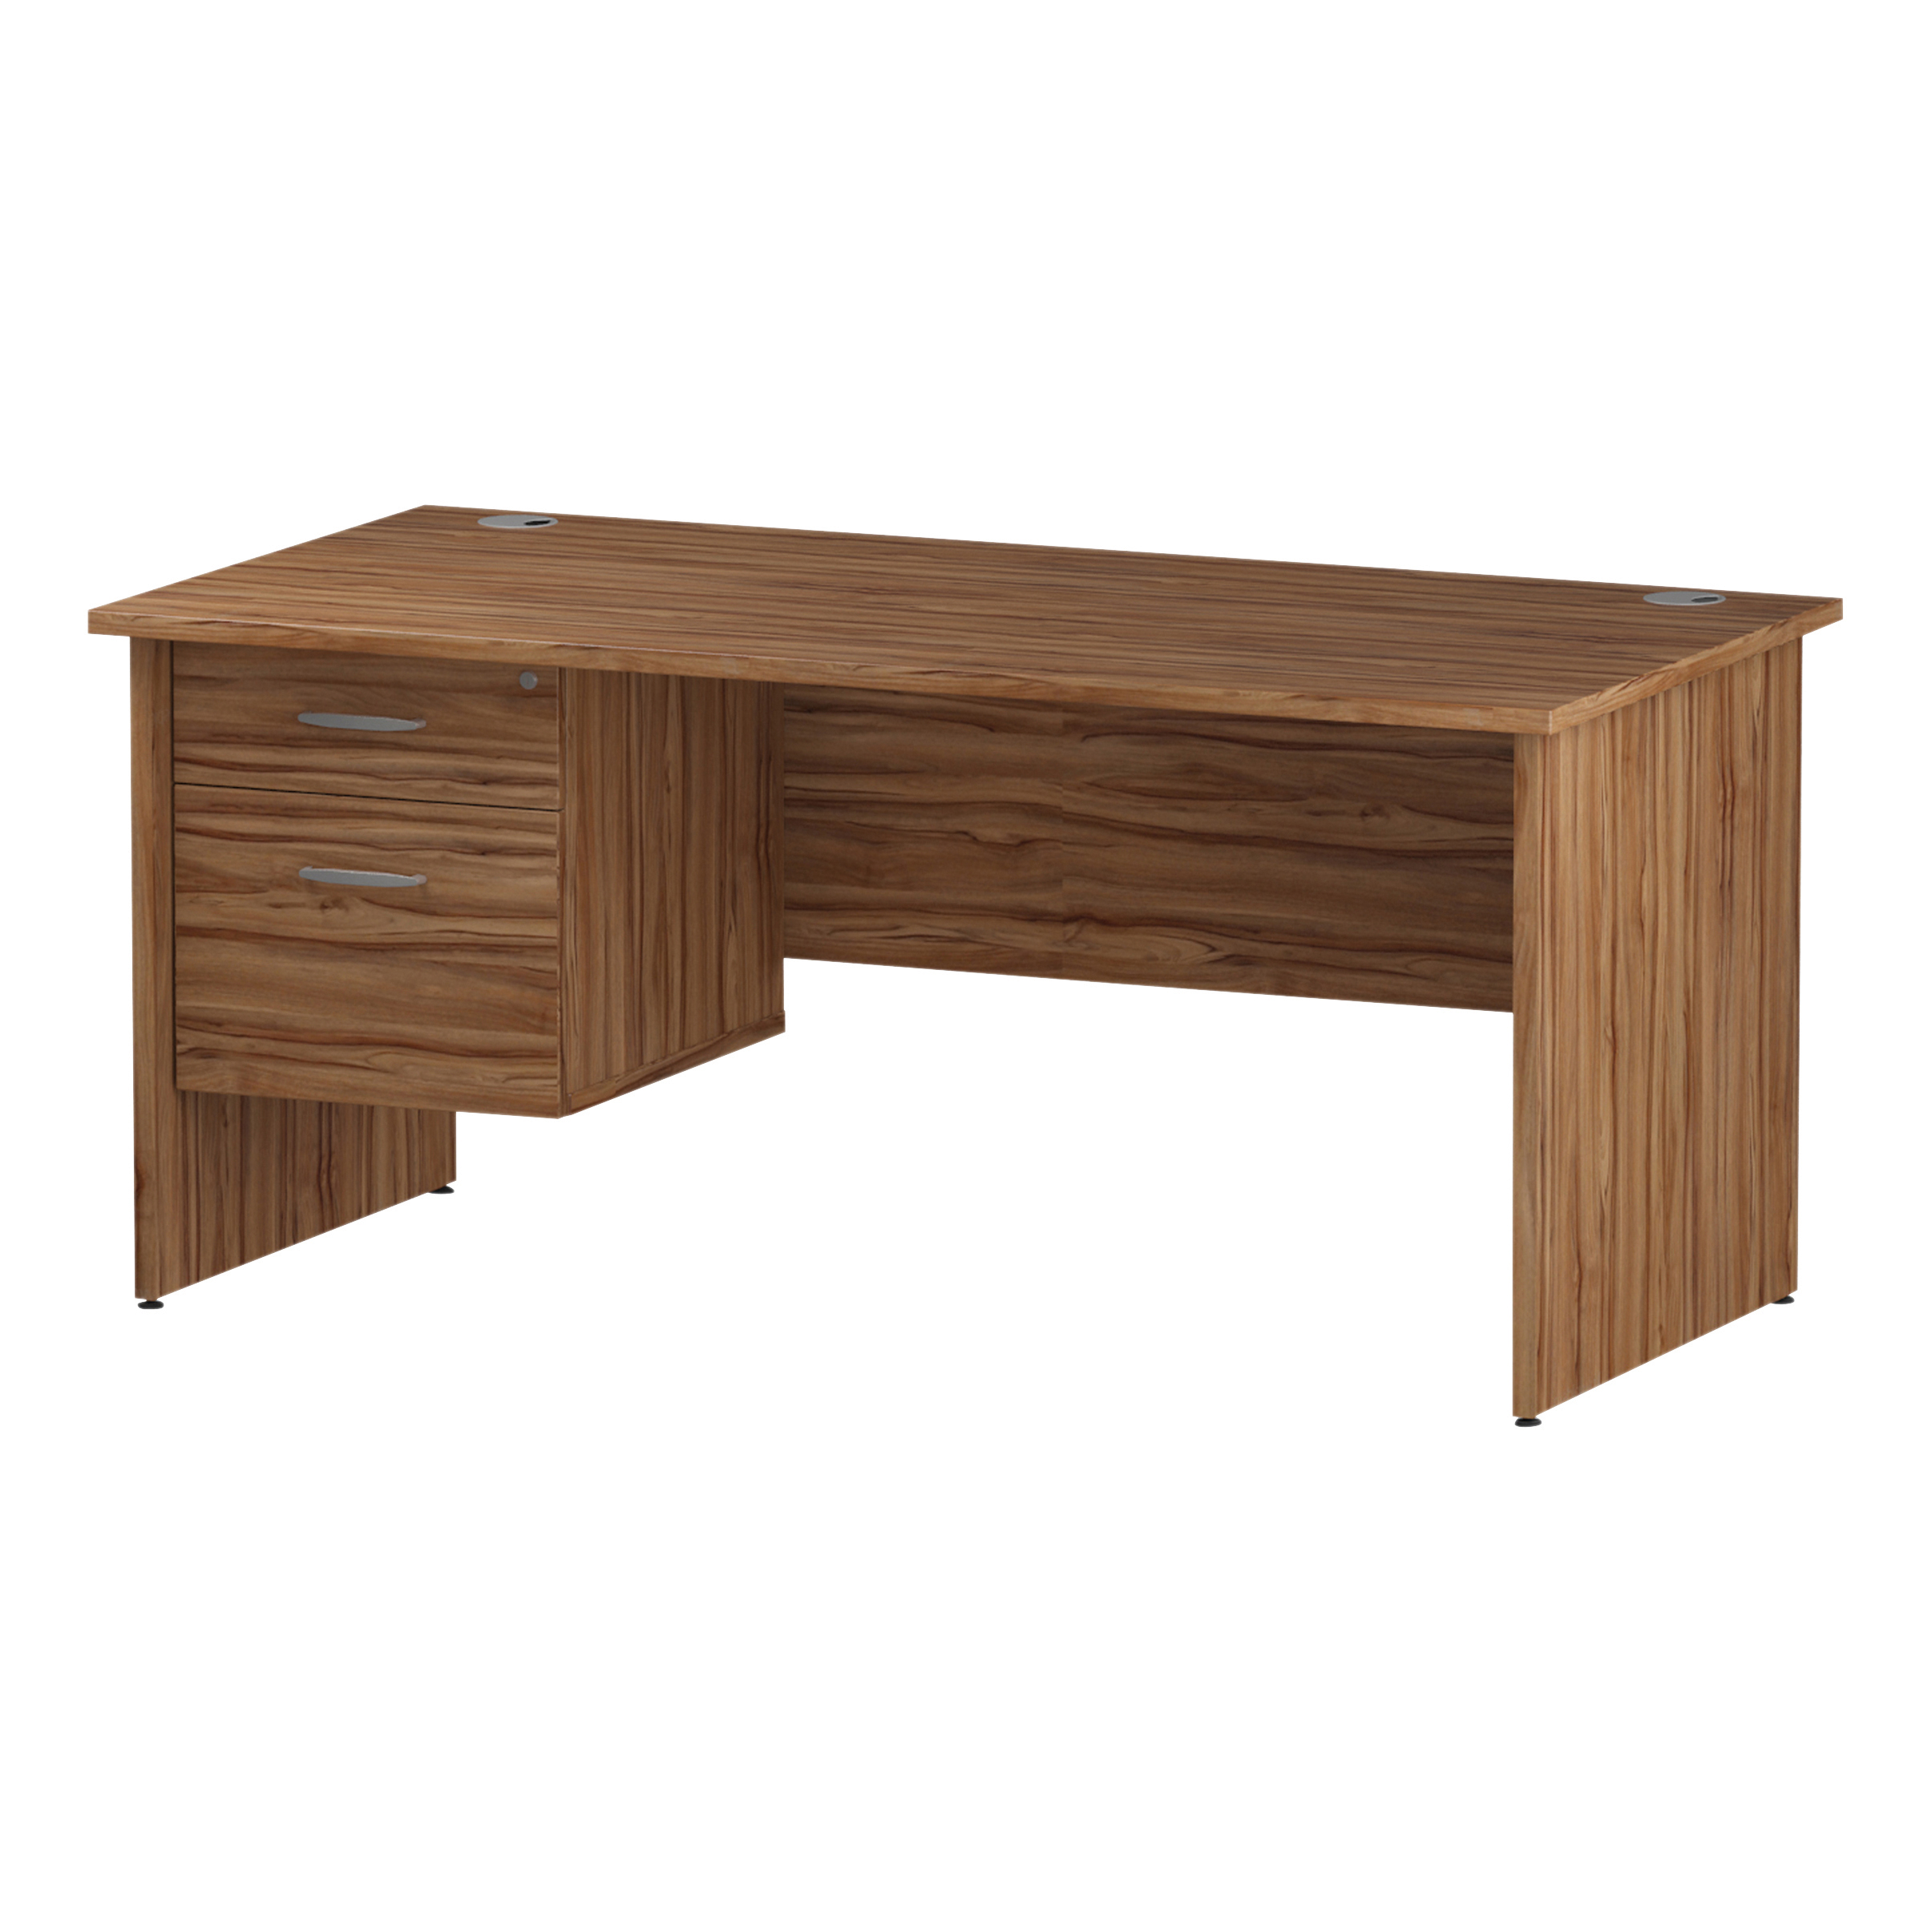 Trexus Rectangular Desk Panel End Leg 1600x800mm Fixed Pedestal 2 Drawers Walnut Ref I001971